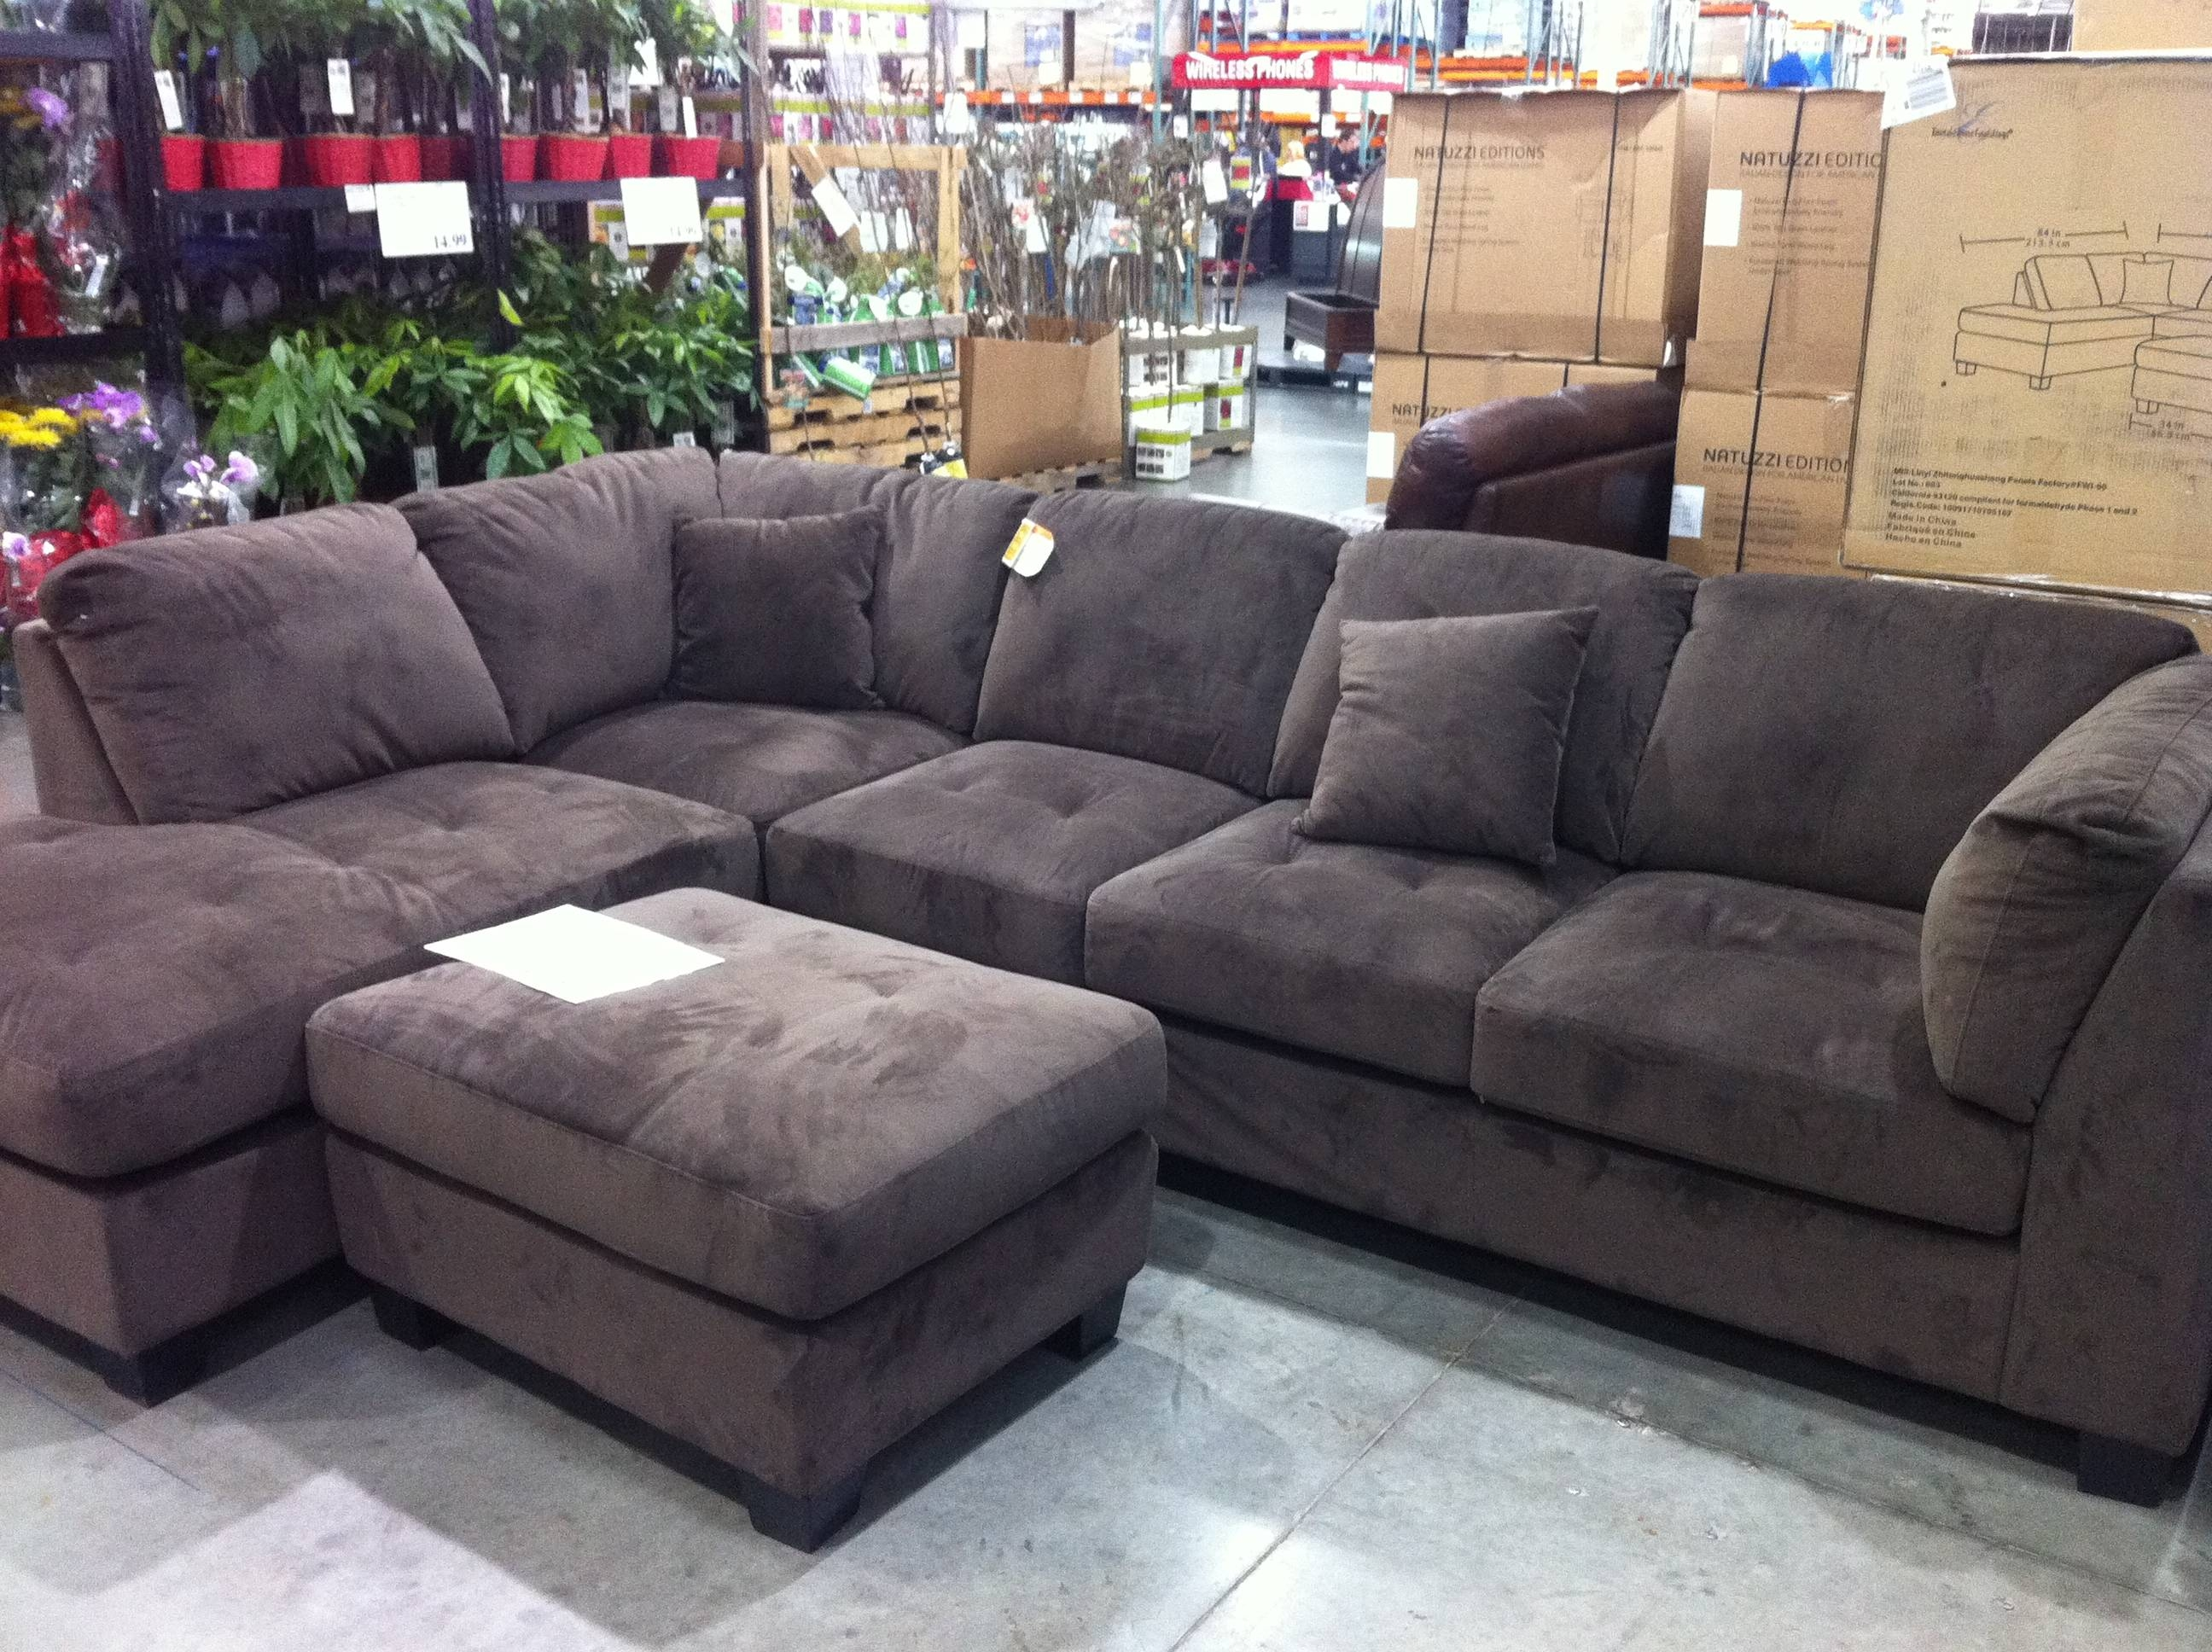 Furniture: Costco Couch | Costco Sectional Couch | Velvet Inside Costco Sectional Sofas (View 15 of 15)